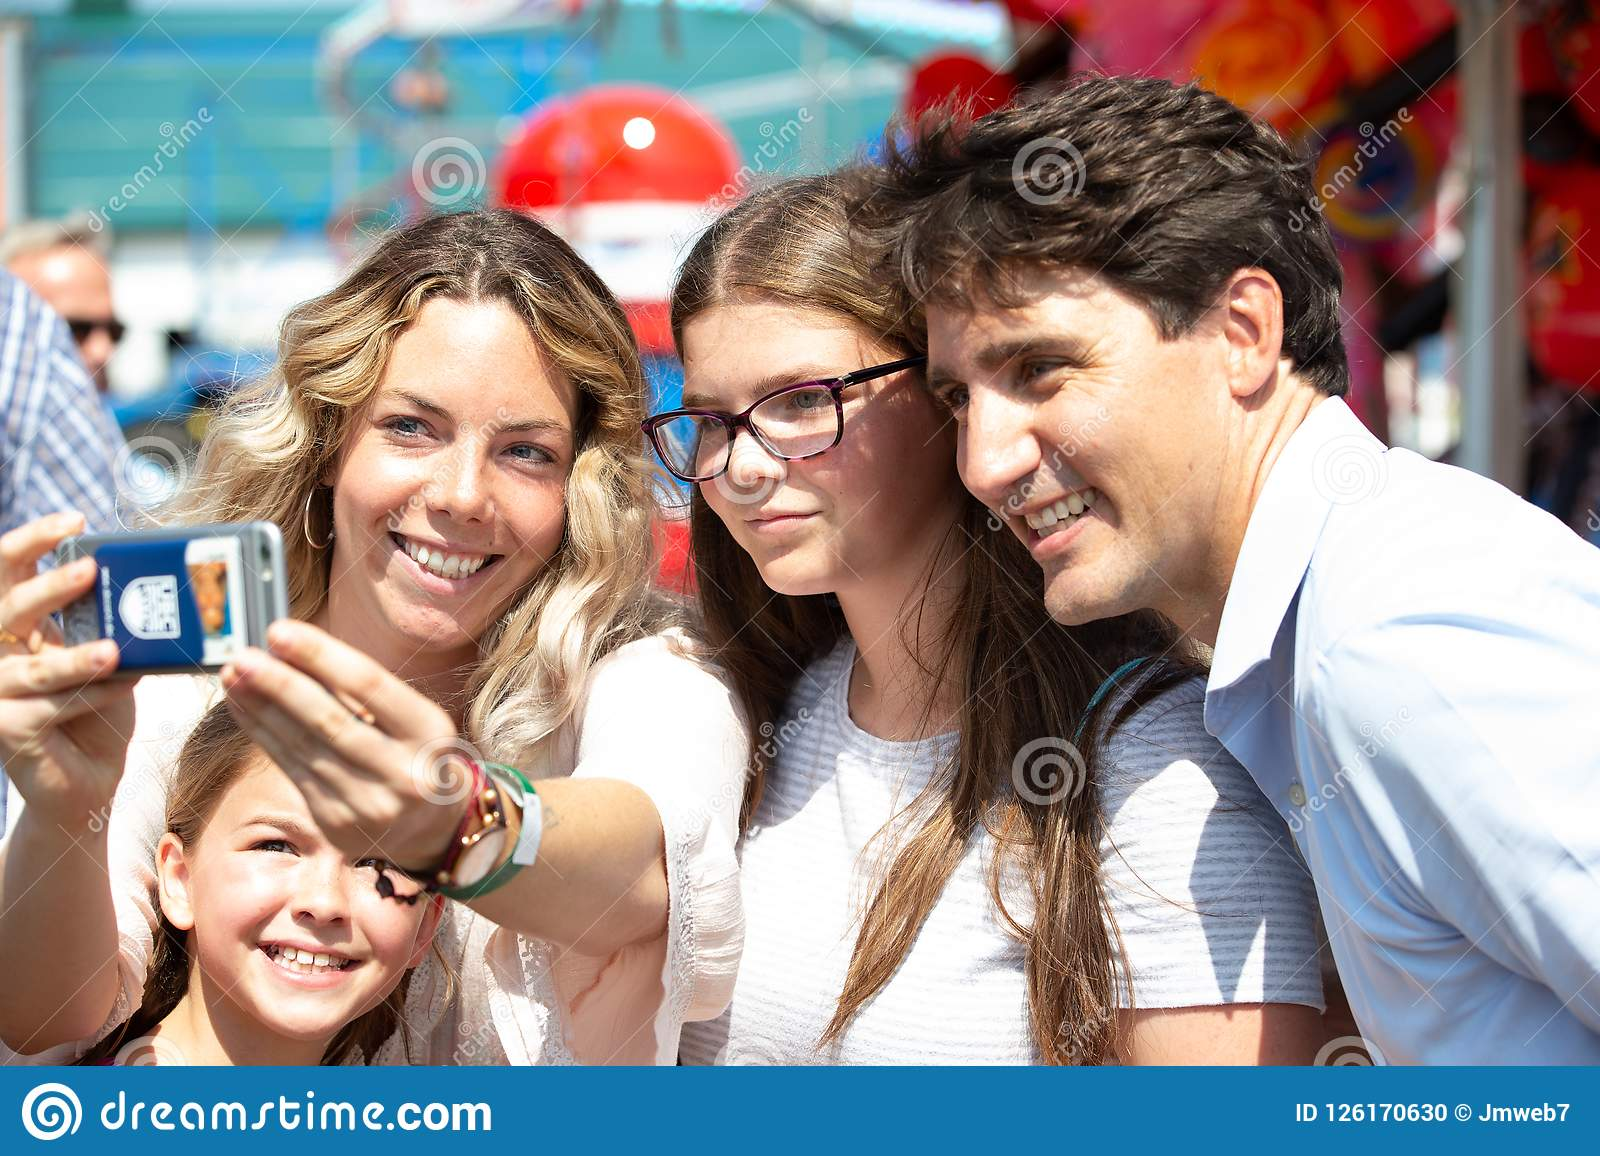 Canadian Prime Minister Justin Trudeau with girls